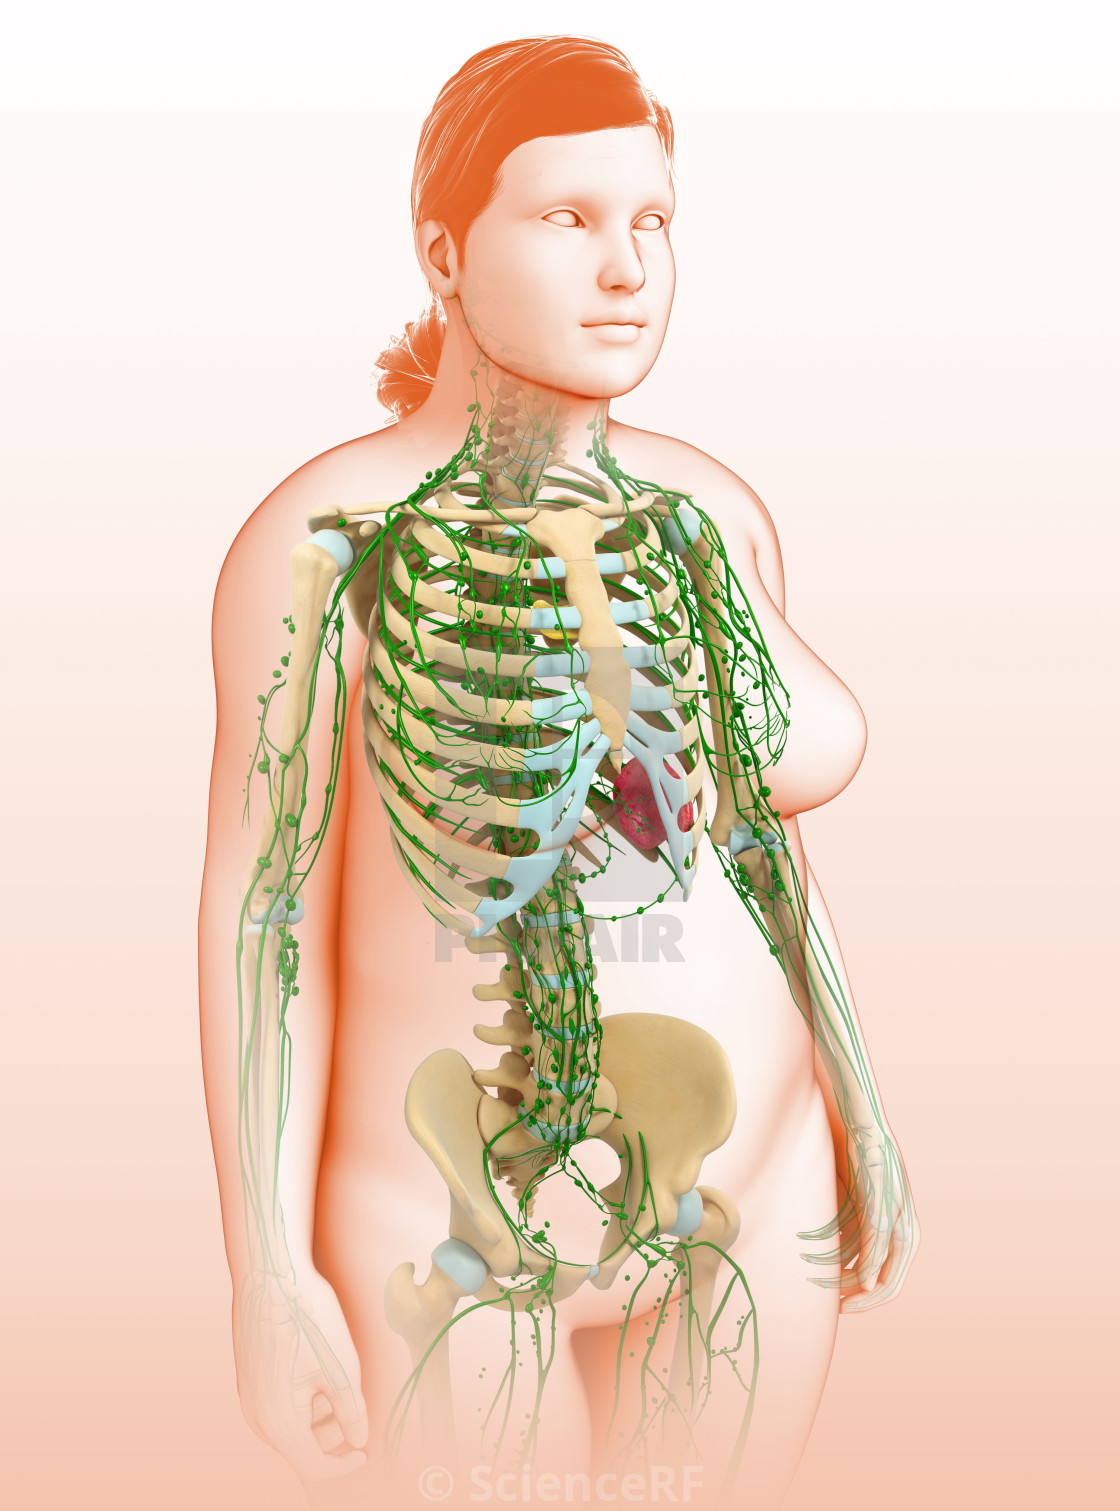 Human Lymphatic System Illustration License For 3900 On Picfair